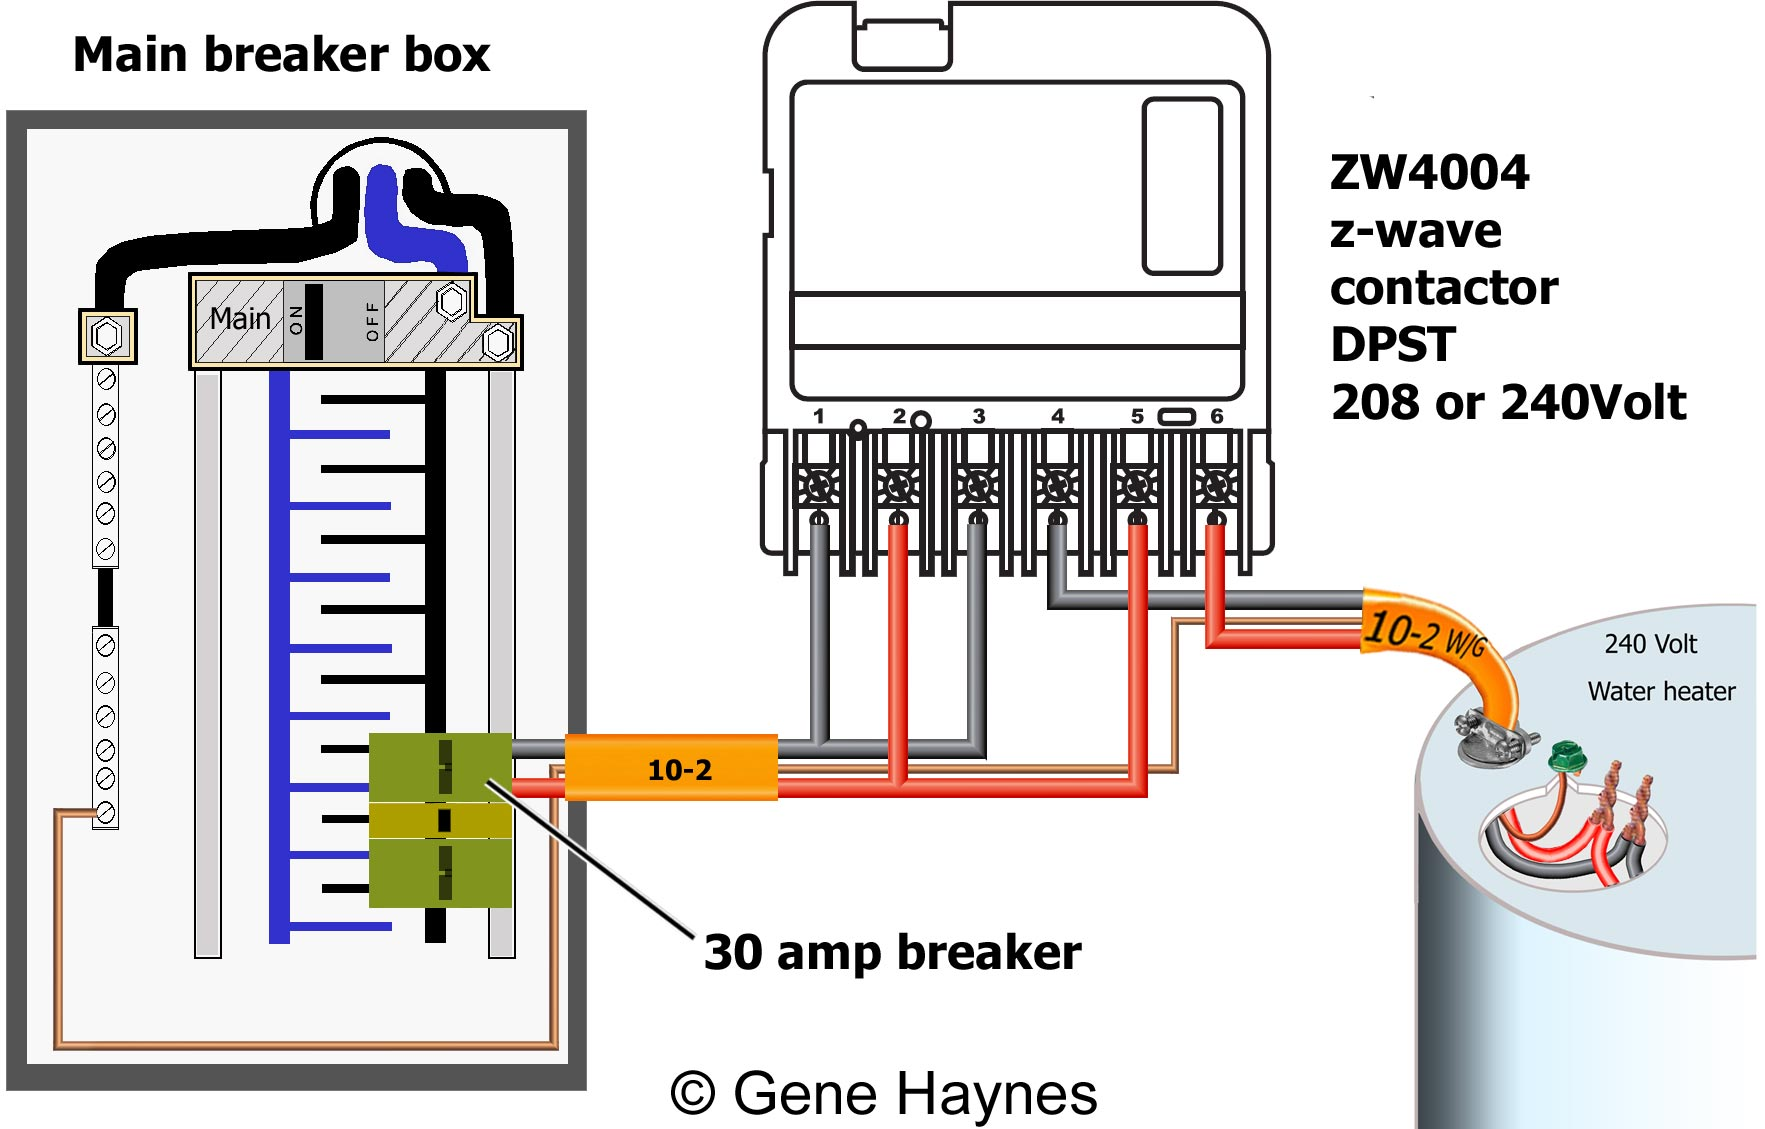 hight resolution of larger image ge z wave contactor automatically detects voltage